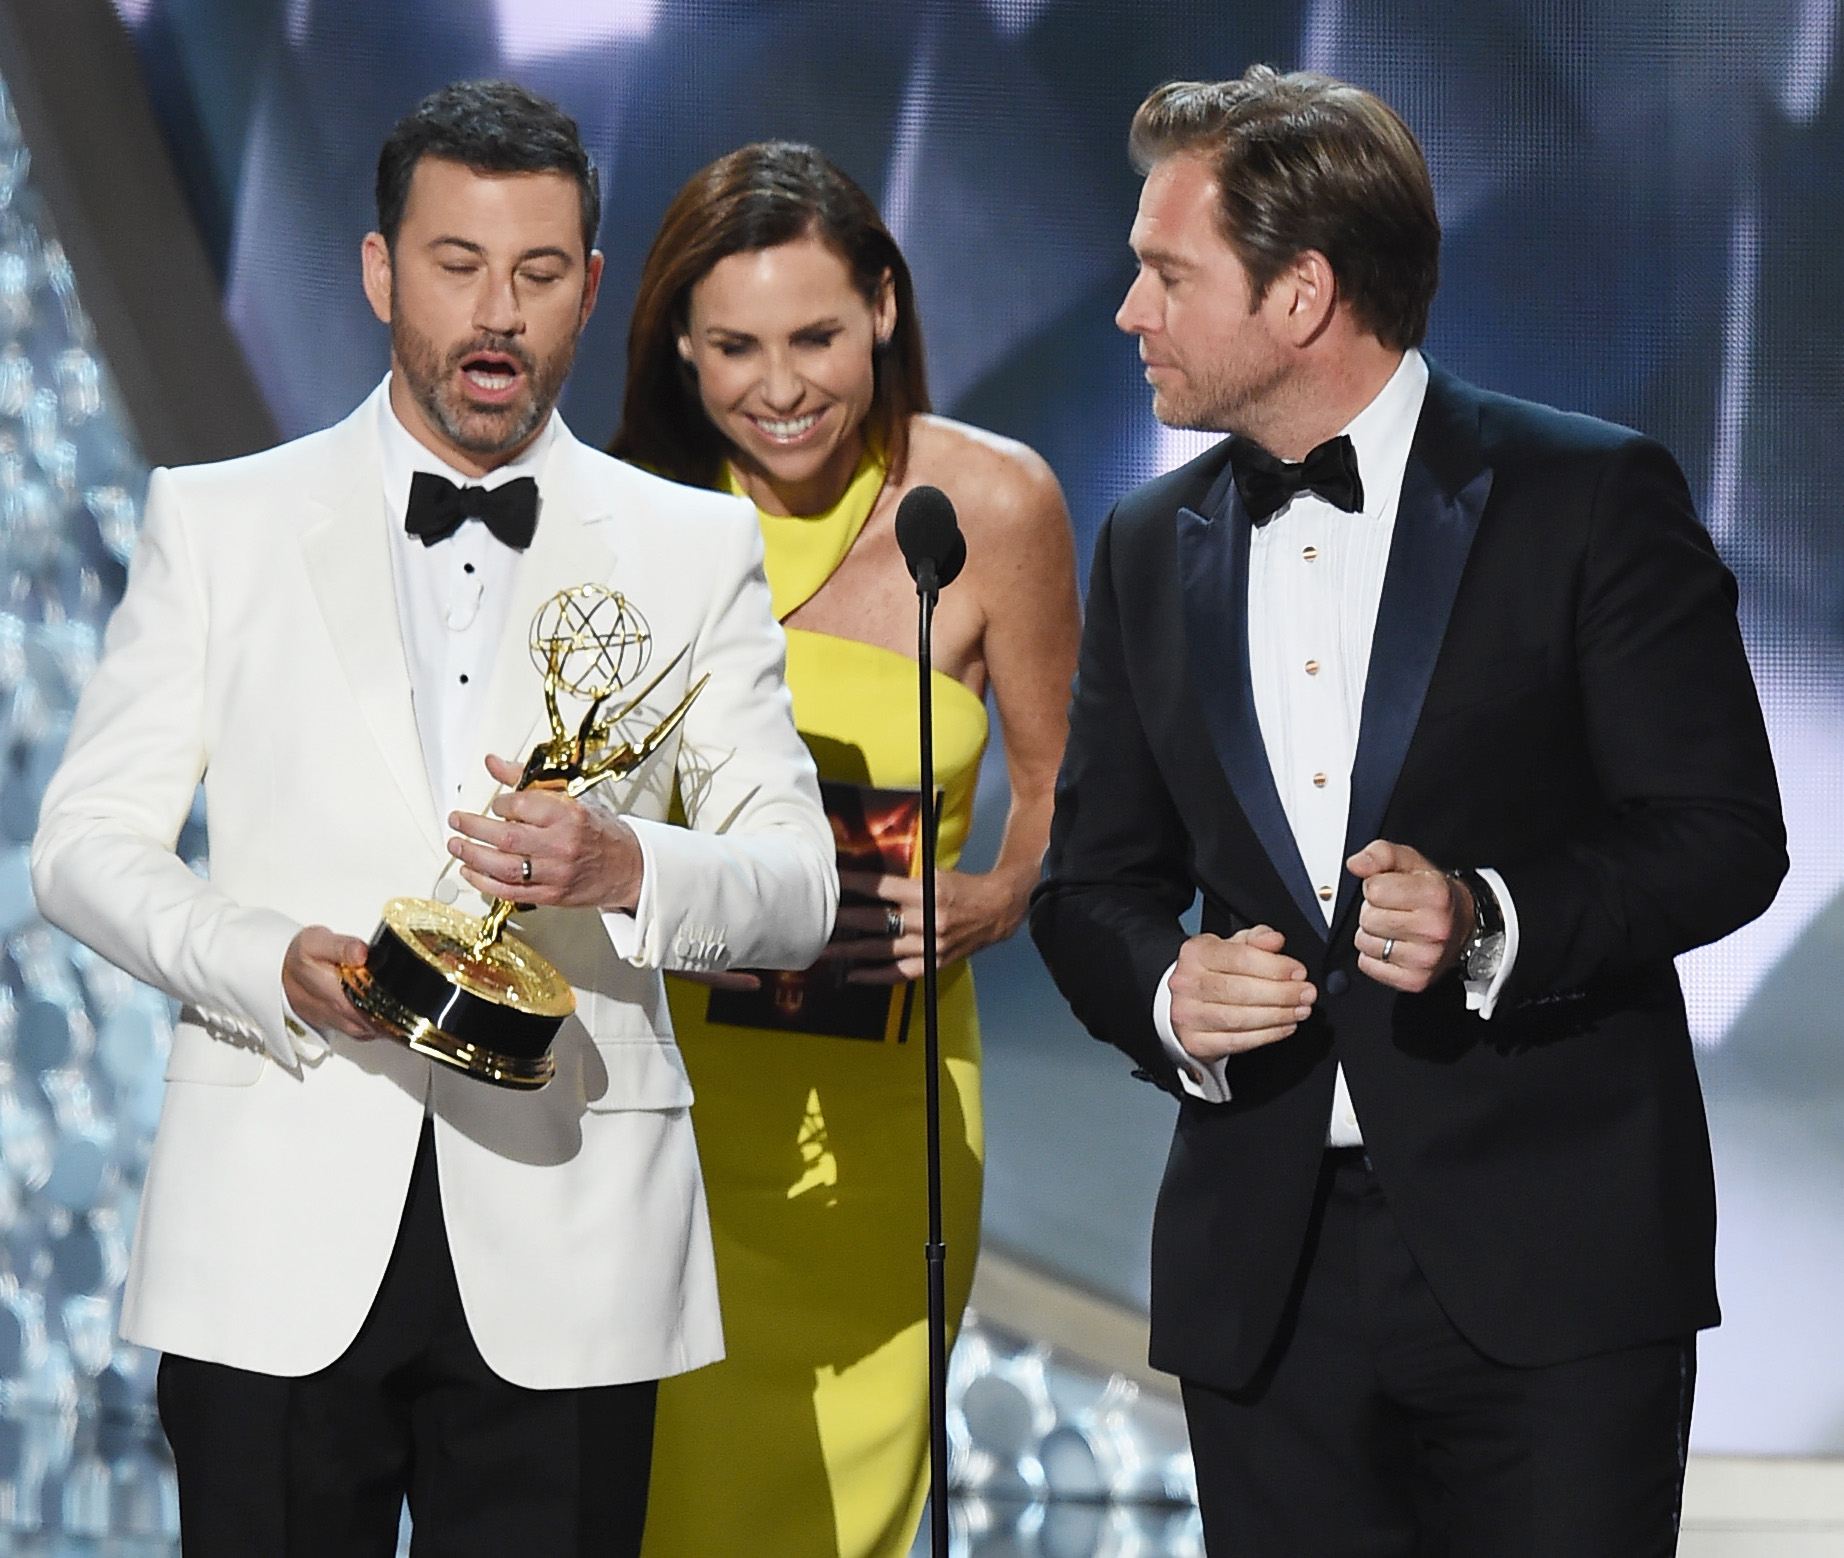 Jimmy Kimmel aired the Emmys blooper reel last night, and we're seriously still LOLing